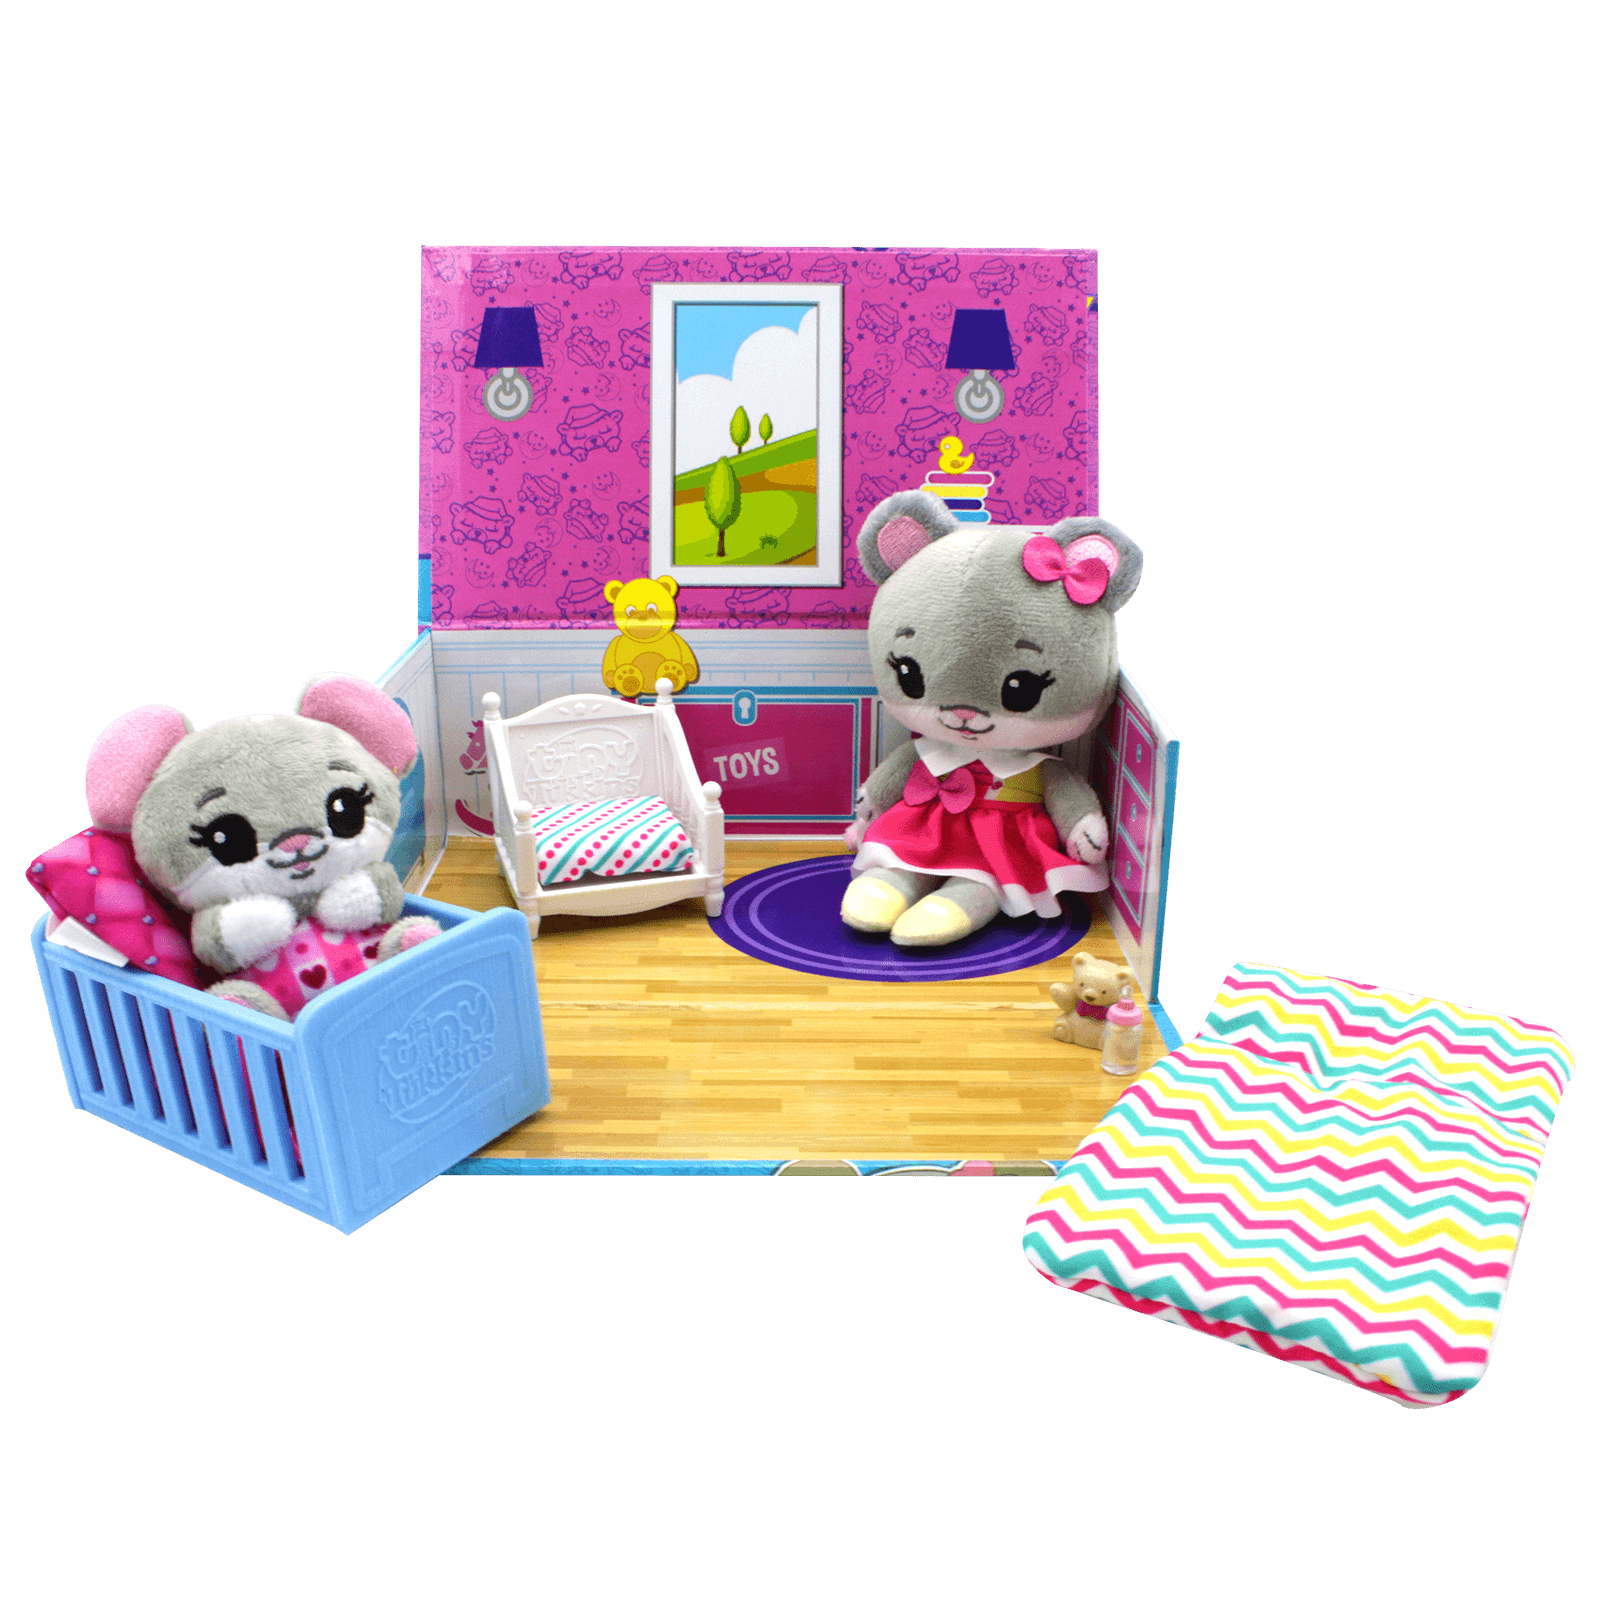 Naptime Nursery Playset